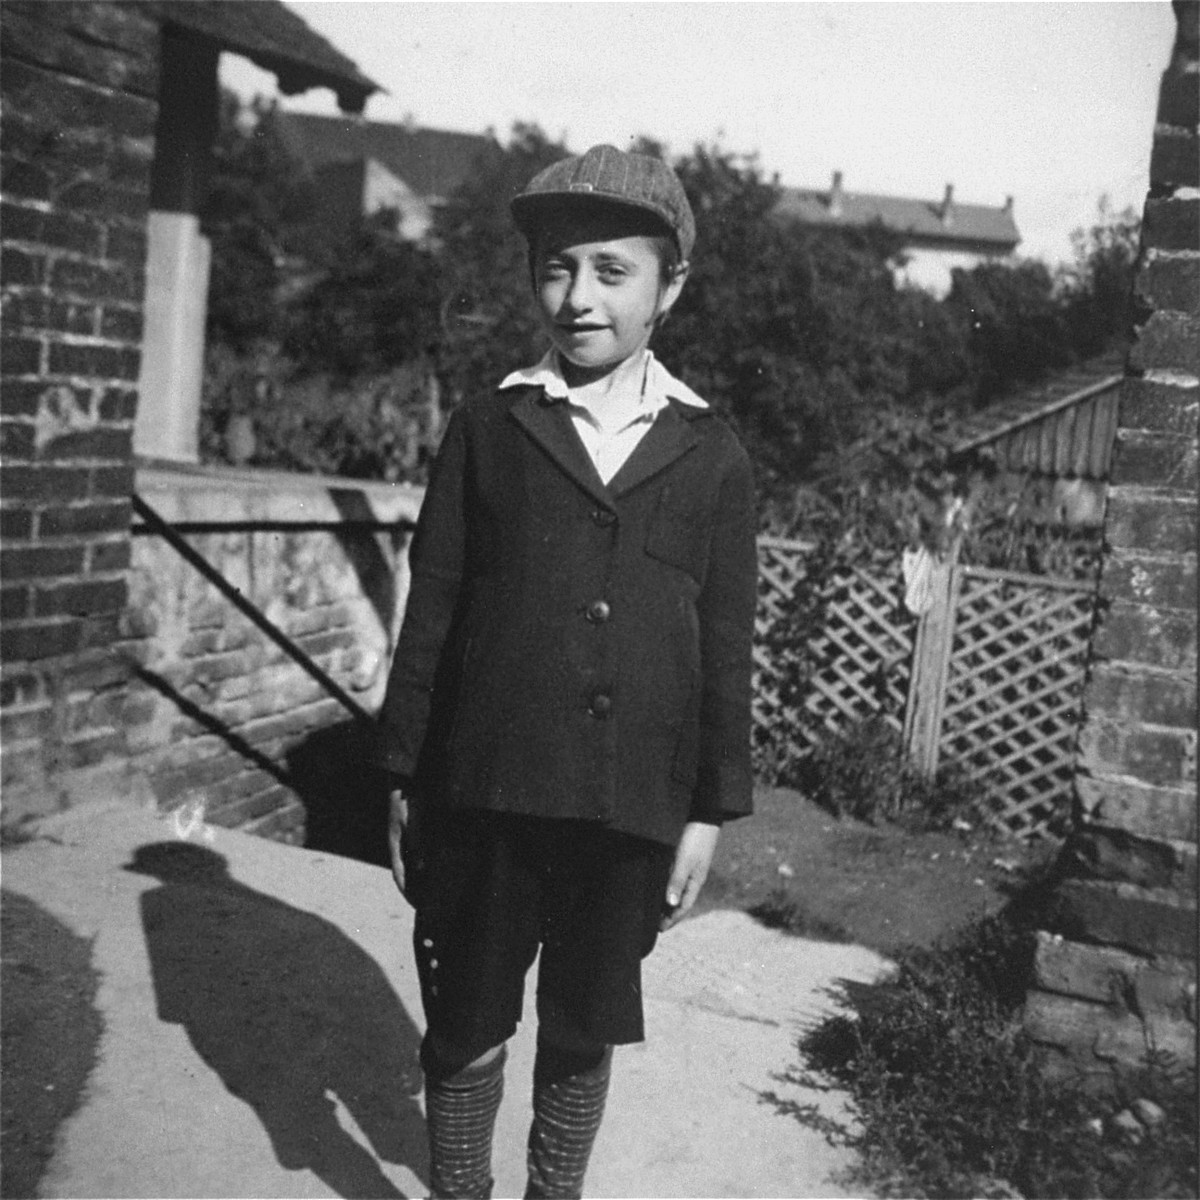 Portrait of a Jewish child standing in a courtyard.  Pictured is Pinchas Kohn.  Pinchas Kohn was the son of Maryshka (Englander) Kohn and the cousin of donor Doreen Koretz.  The Kohn family was deported to Auschwitz in the spring of 1944 and killed on arrival.